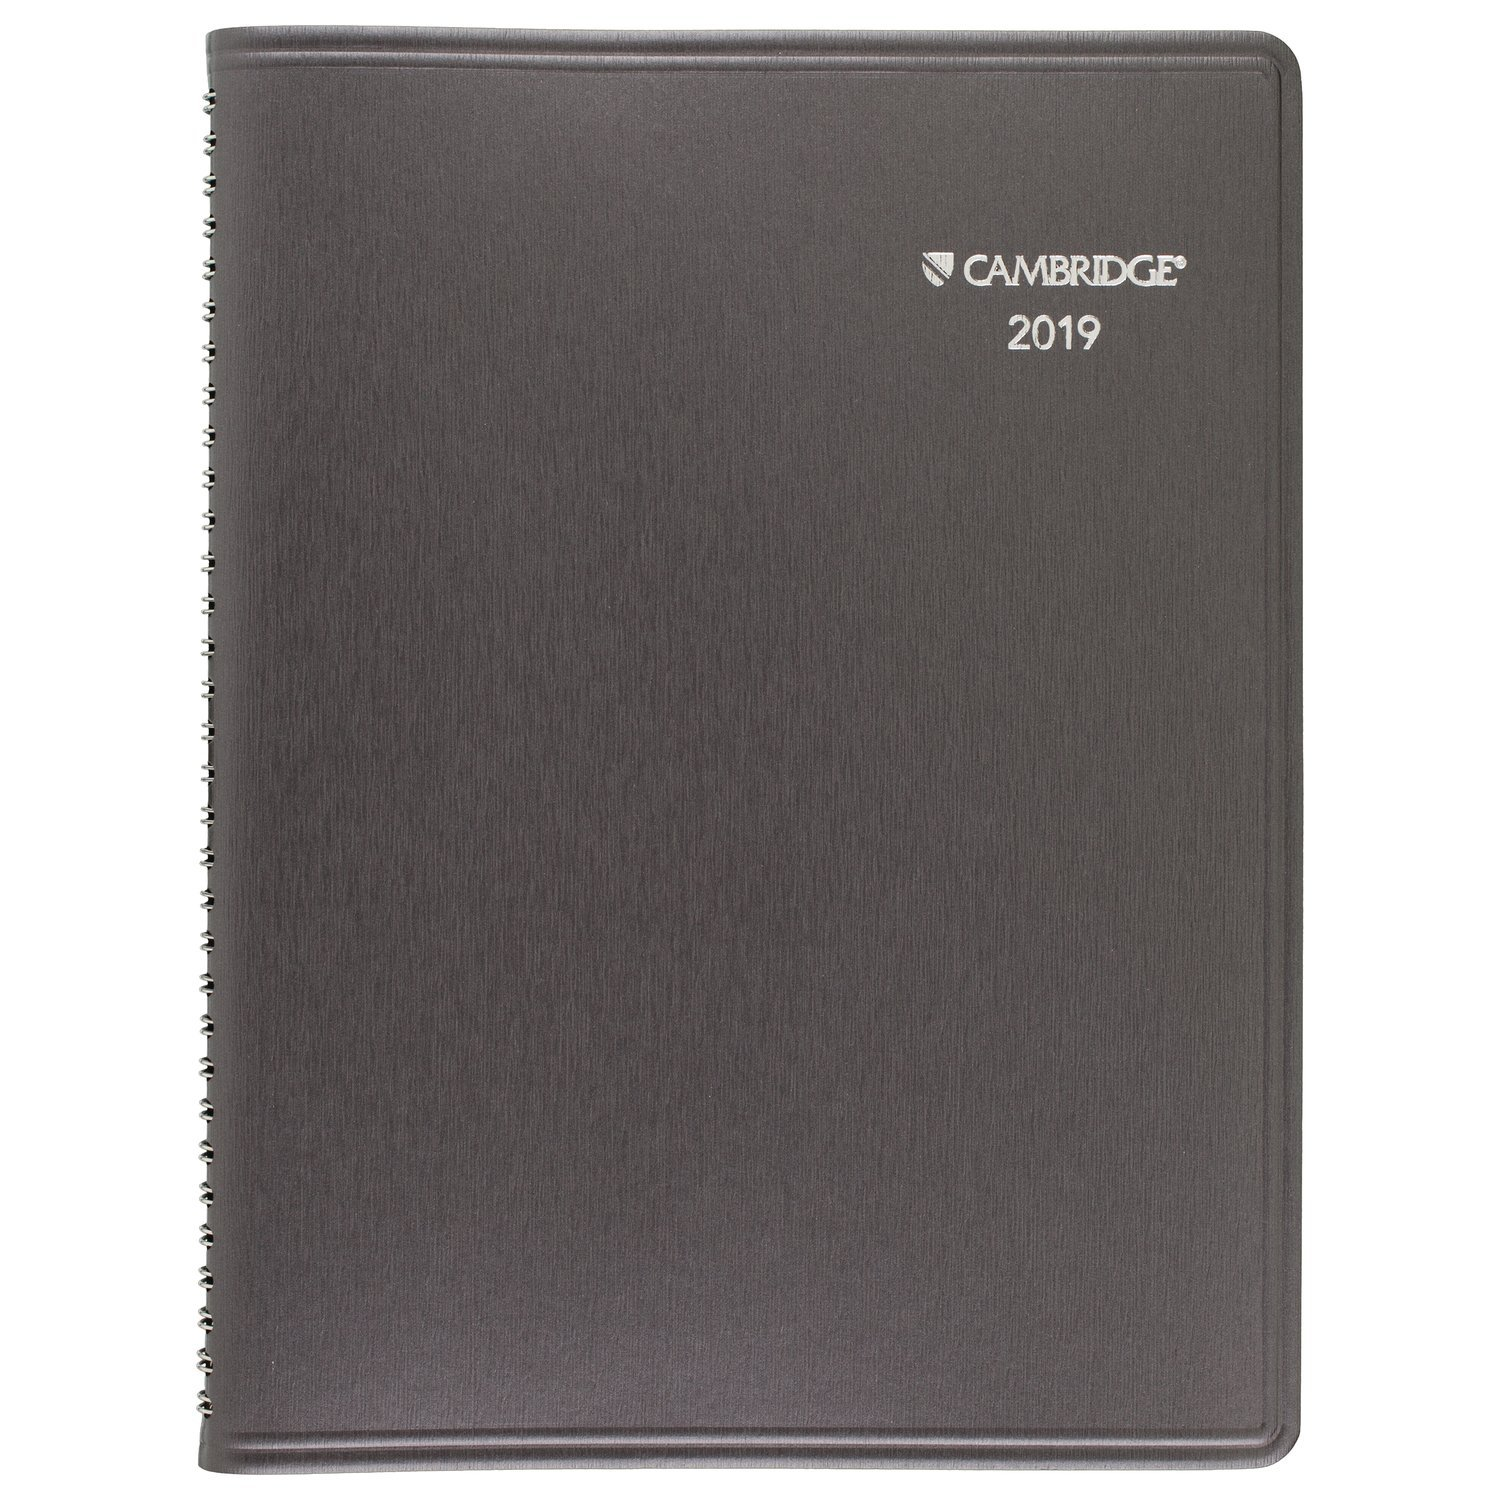 Cambridge 2019 Business Weekly & Monthly Appointment Book / Planner, 8'' x 11'', Large, Silver(CRW60230) by Cambridge (Image #1)